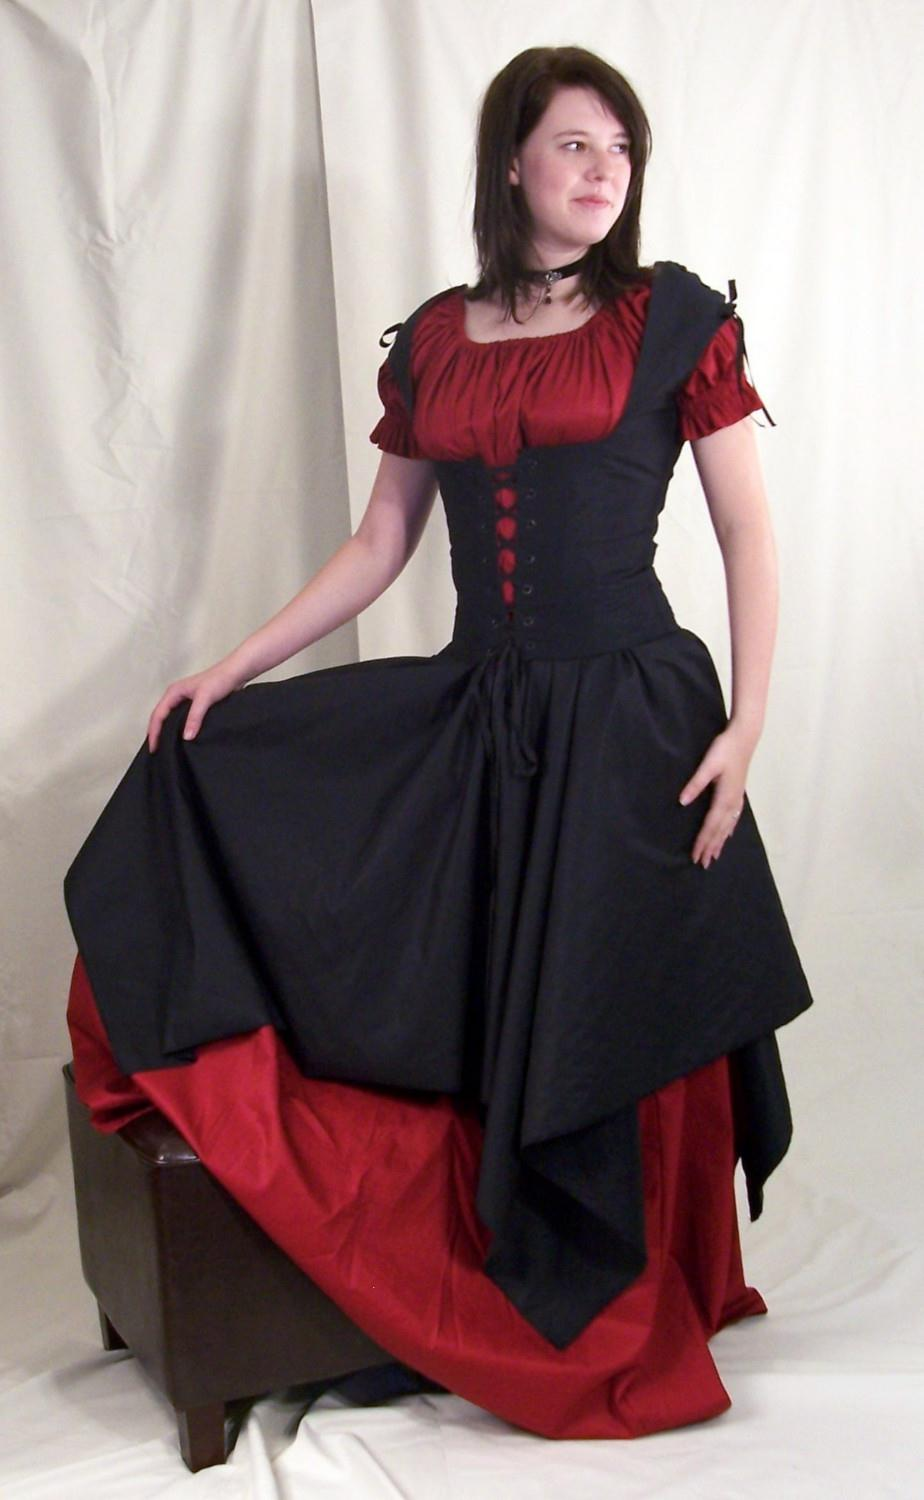 Gothic wedding shop - Whilst This May Strike Some As A Rather Unconventional Choice The Gothic Black Wedding Gowns Are Much Preferred By Gothic Lovers